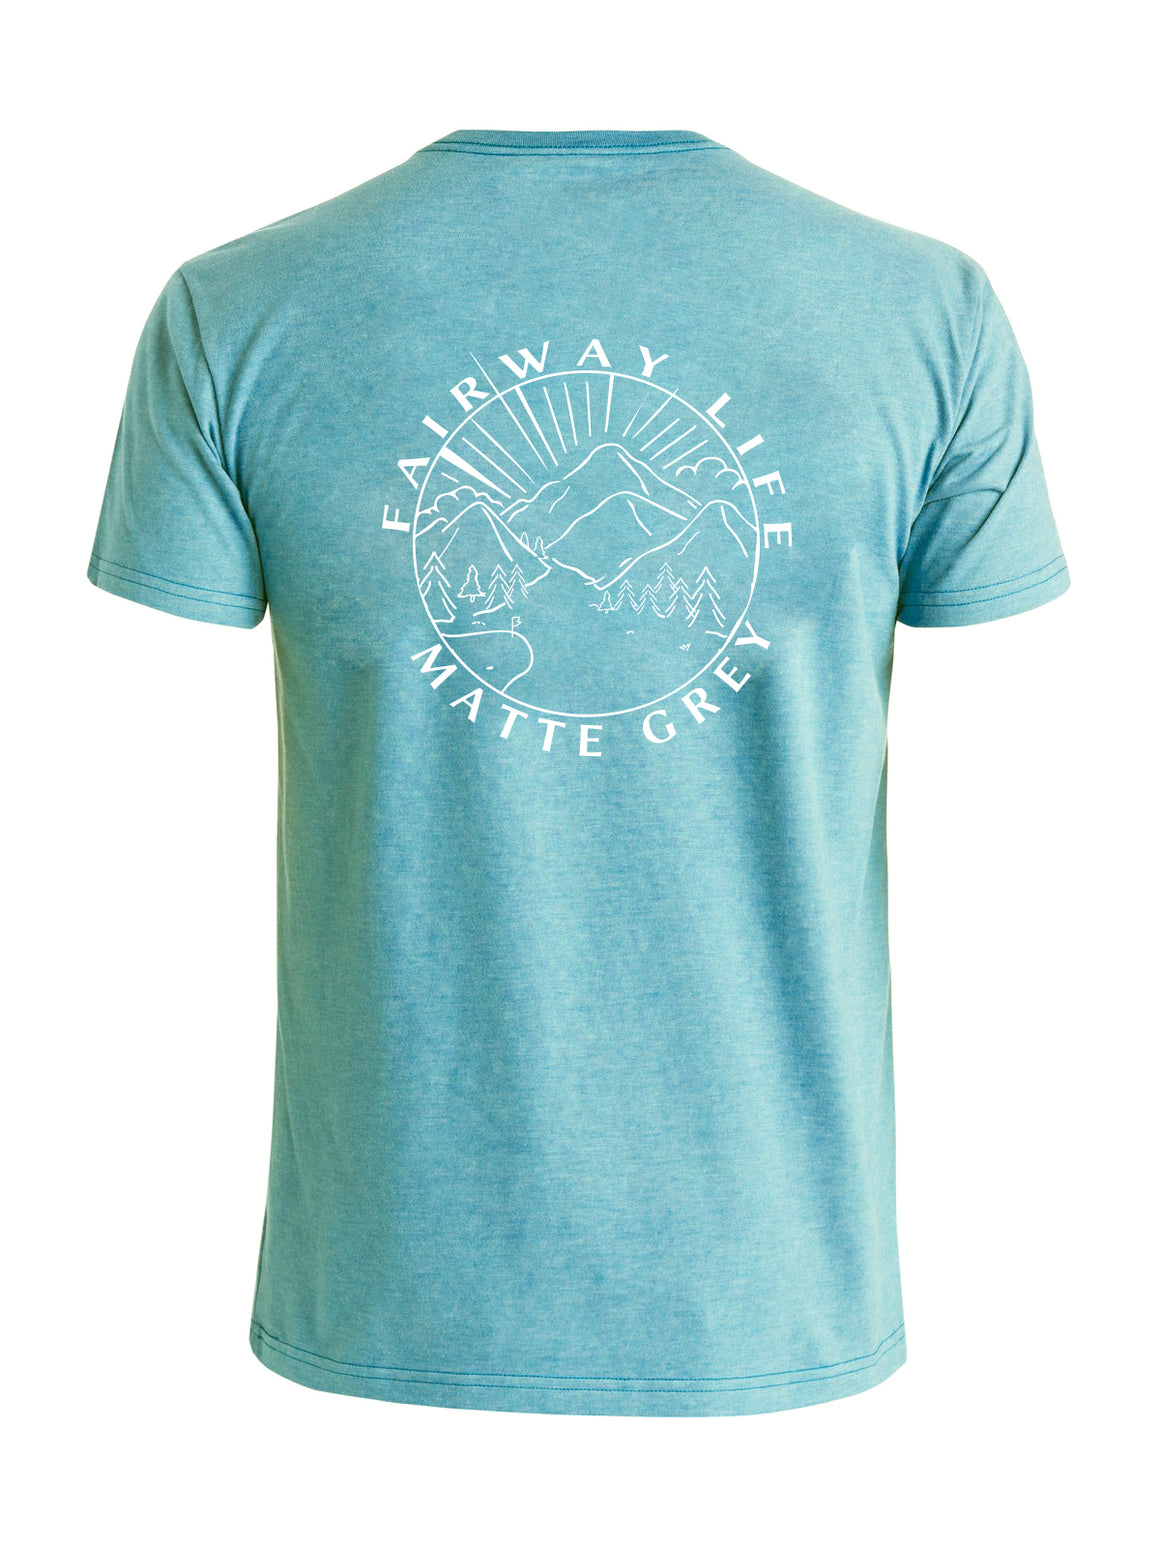 Fairway Life Outdoors Tee Shirt - Ice Blue (White)